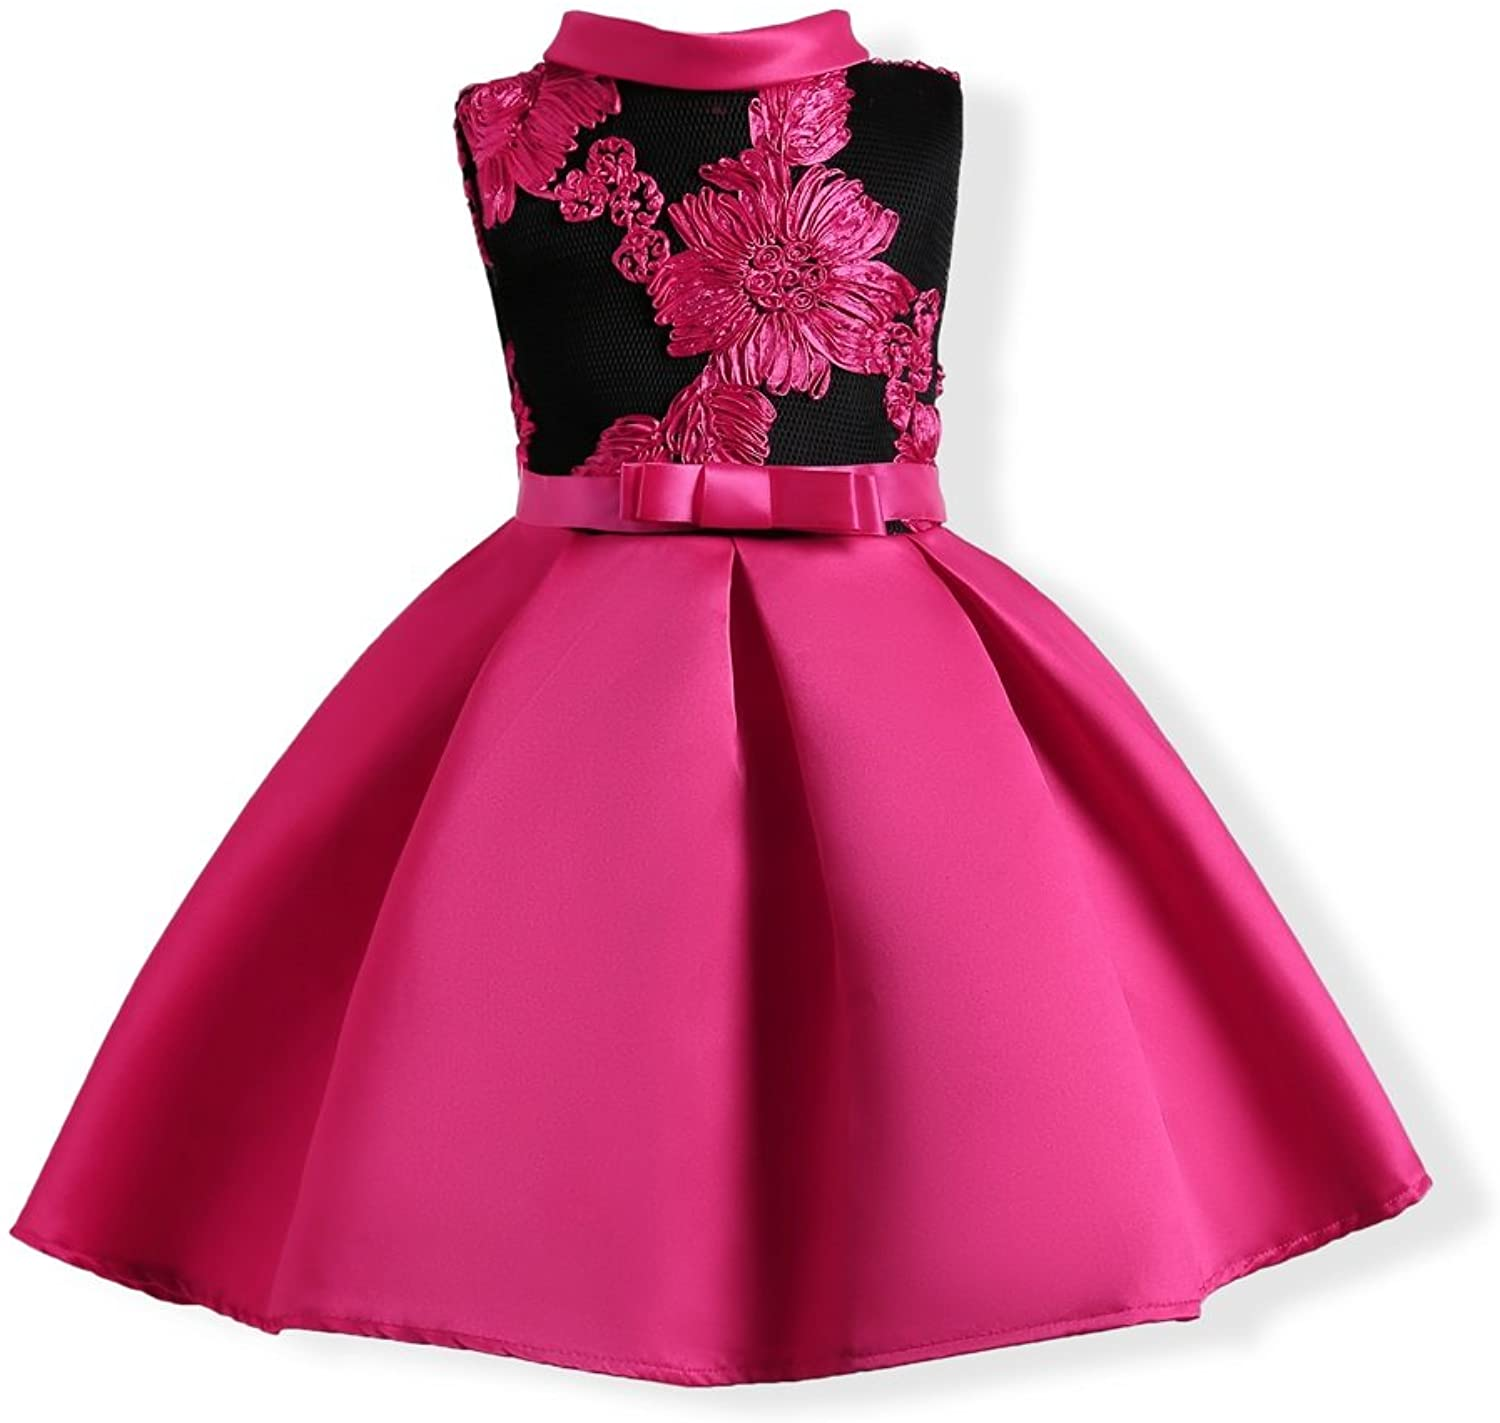 FXFAN Girls Dresses Butterfly Embroidery Formal Wedding Party Dresses Princess Dresses(red, Pink, blueee) ZHANGM